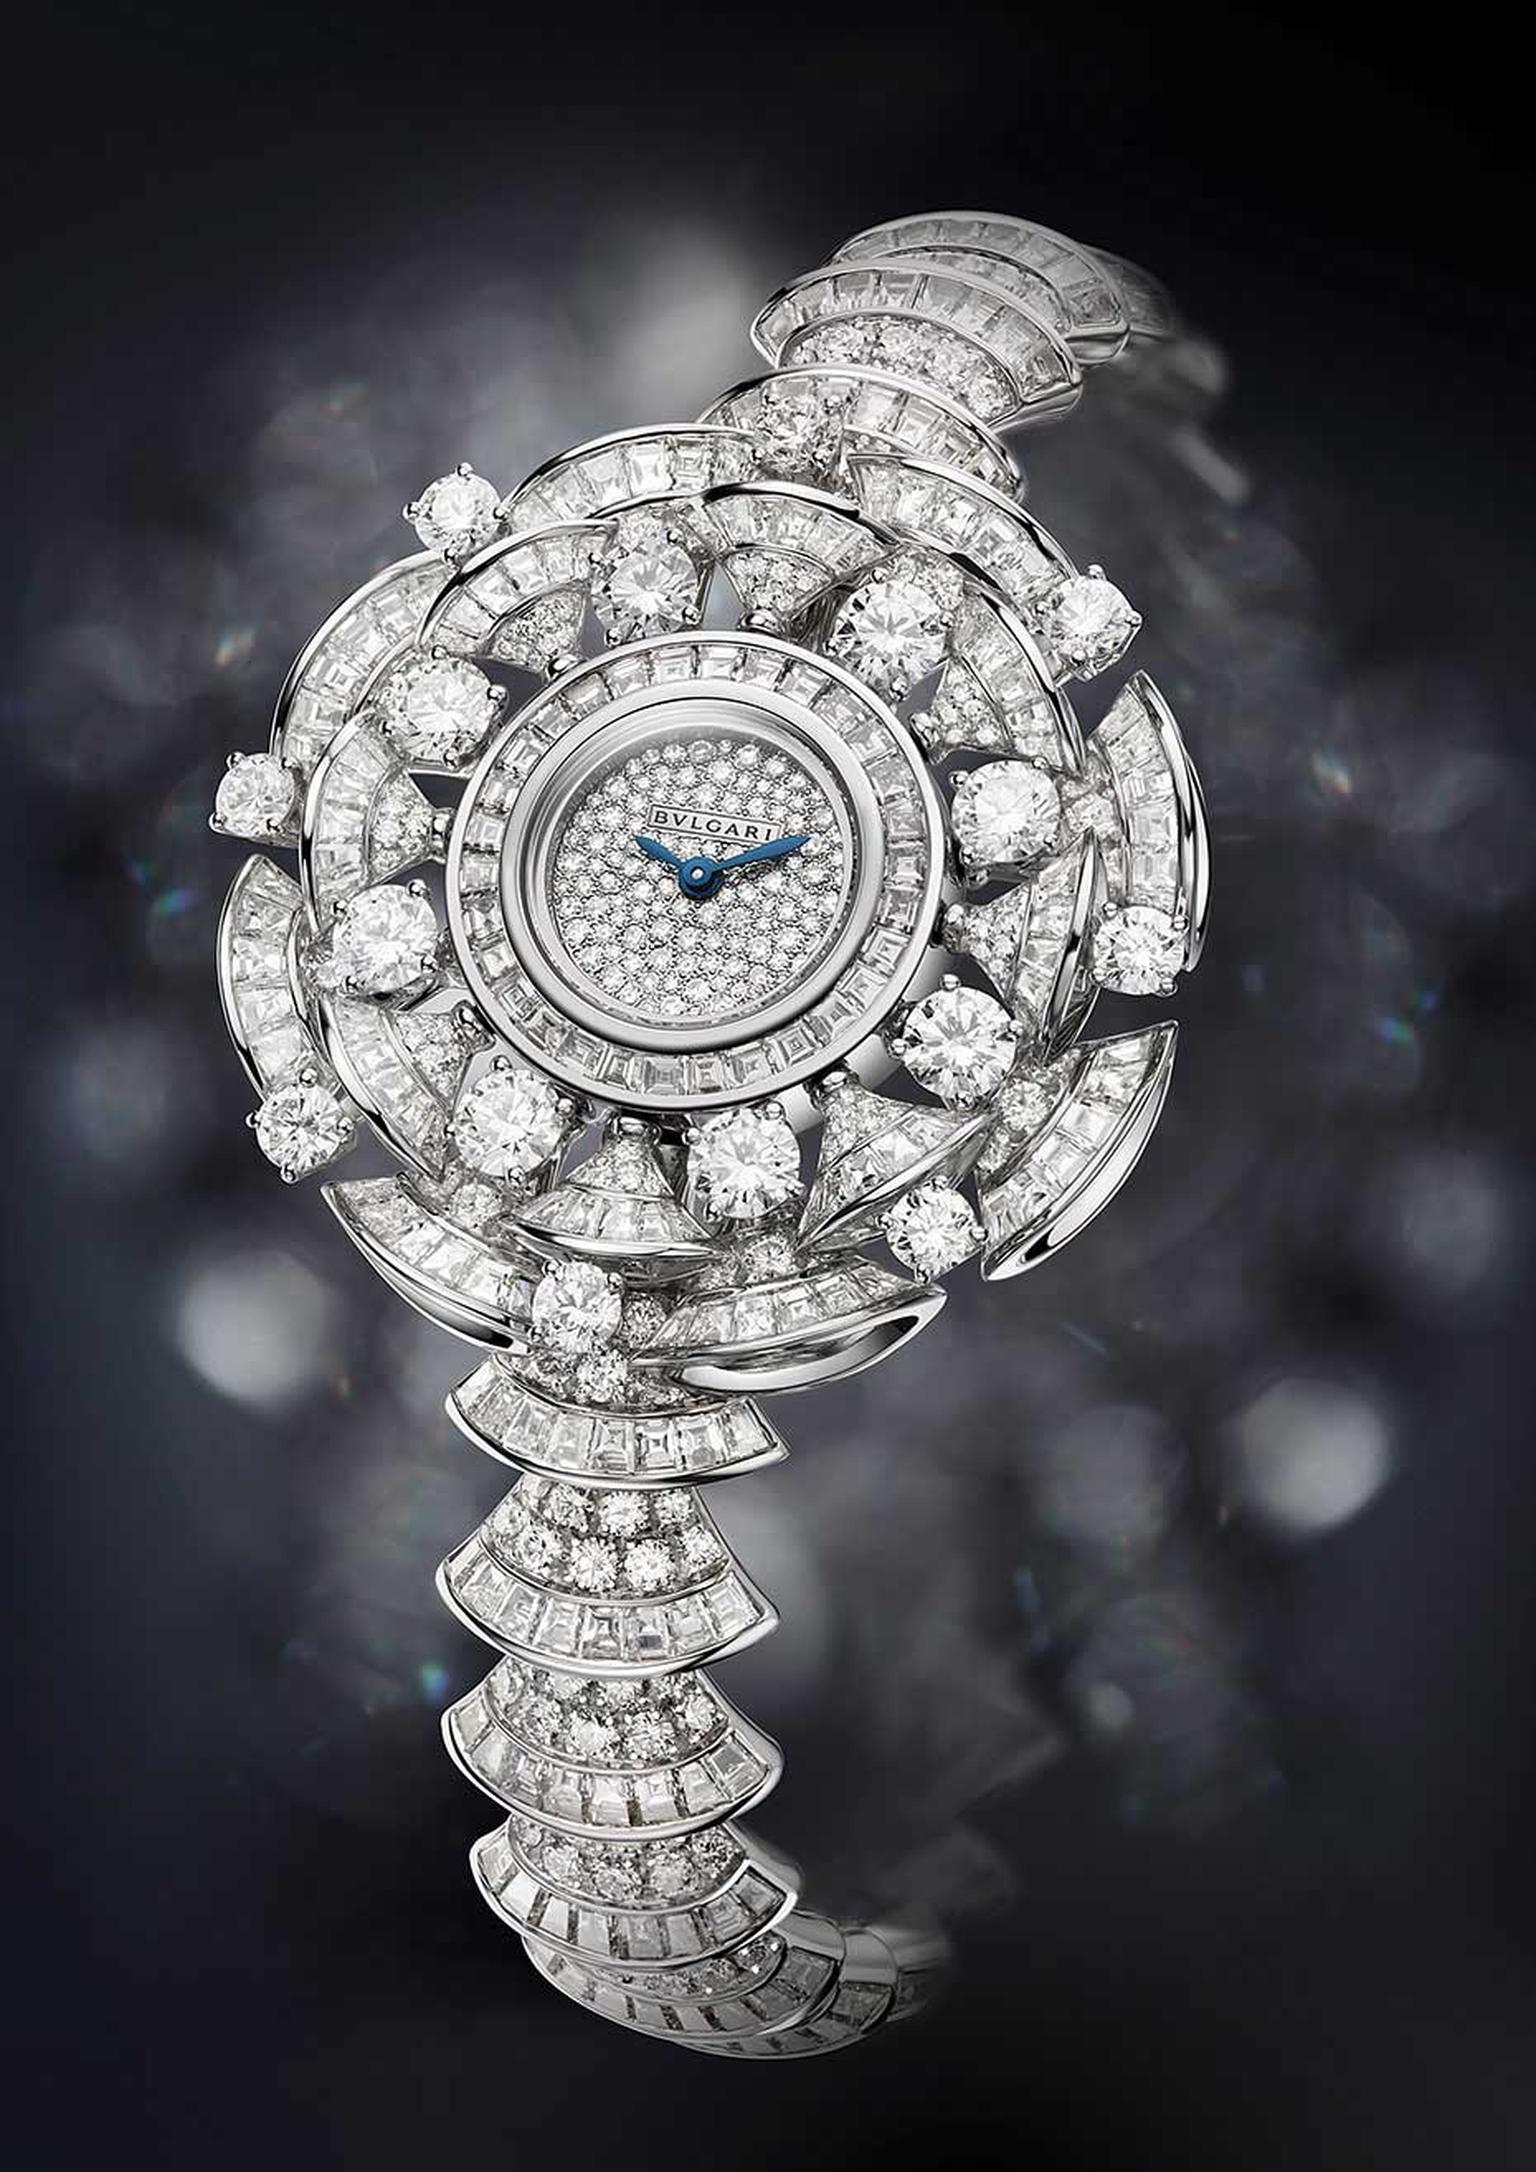 Bulgari Diva watch features 302 baguette-cut diamonds, 16 round-cut diamonds and 394 brilliant-cut diamonds adding up to 22.62ct.